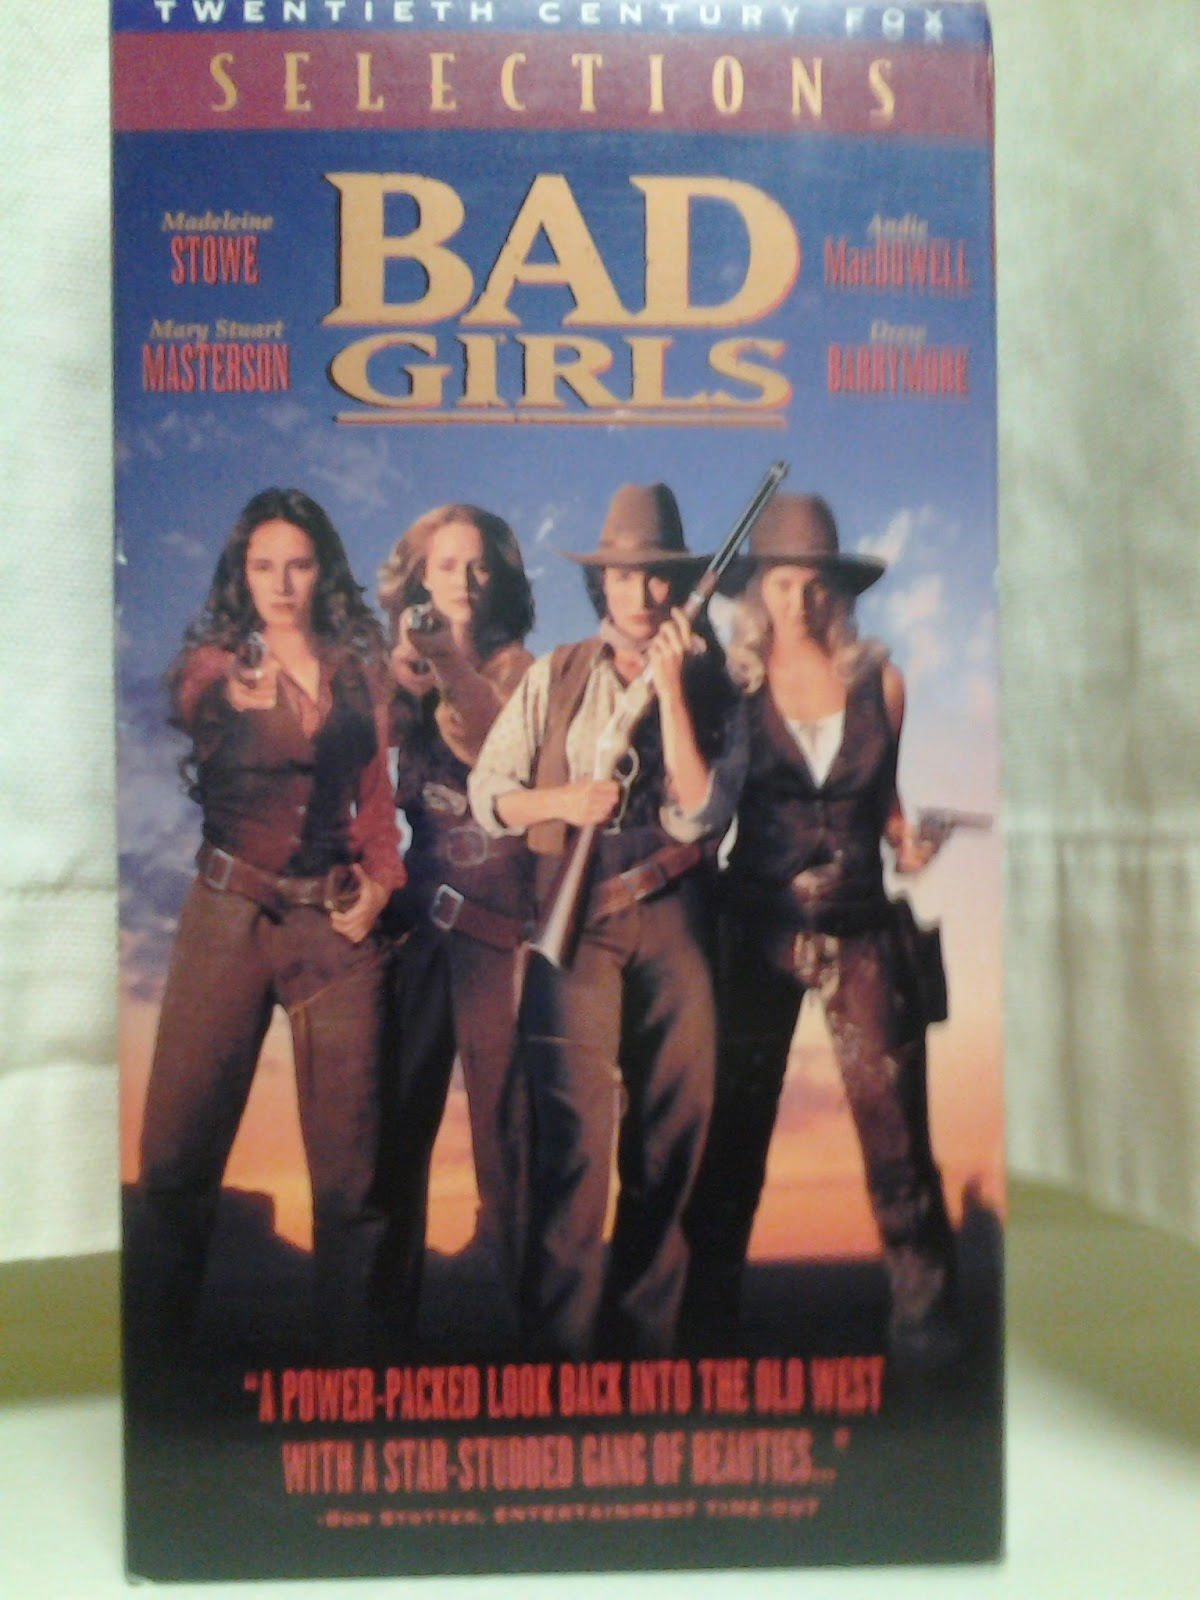 The valley girl movie